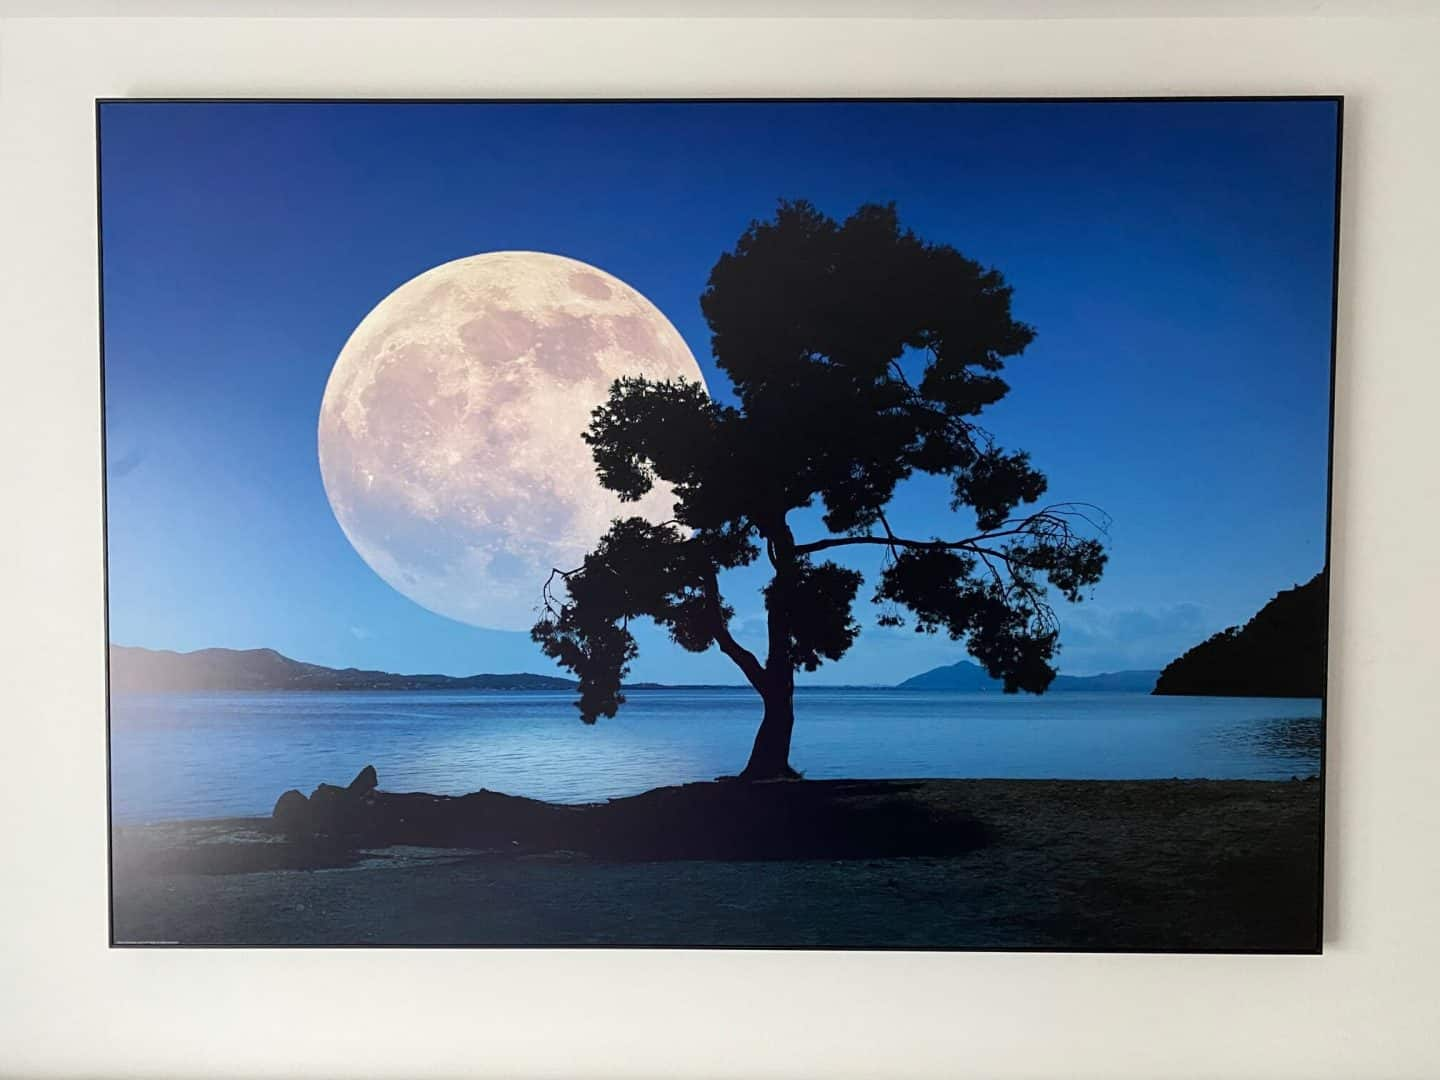 Moon rising over the sea - wall art